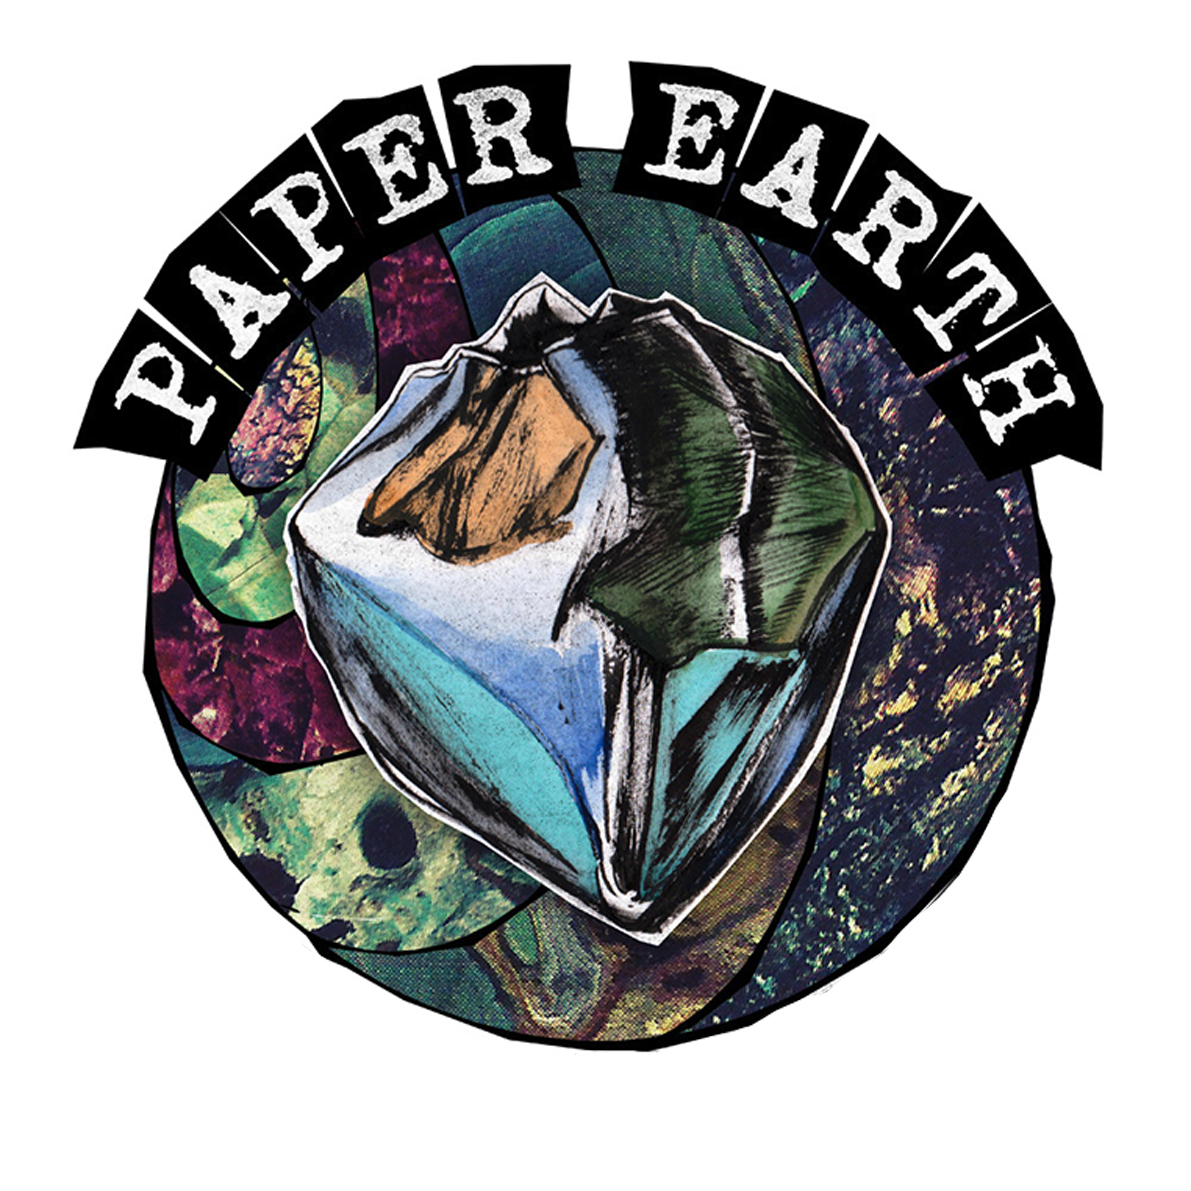 PAPER EARTH FAIR - A community arts and conservation fair in Tarzana, CA - showcasing art techniques and environmental stewardship.